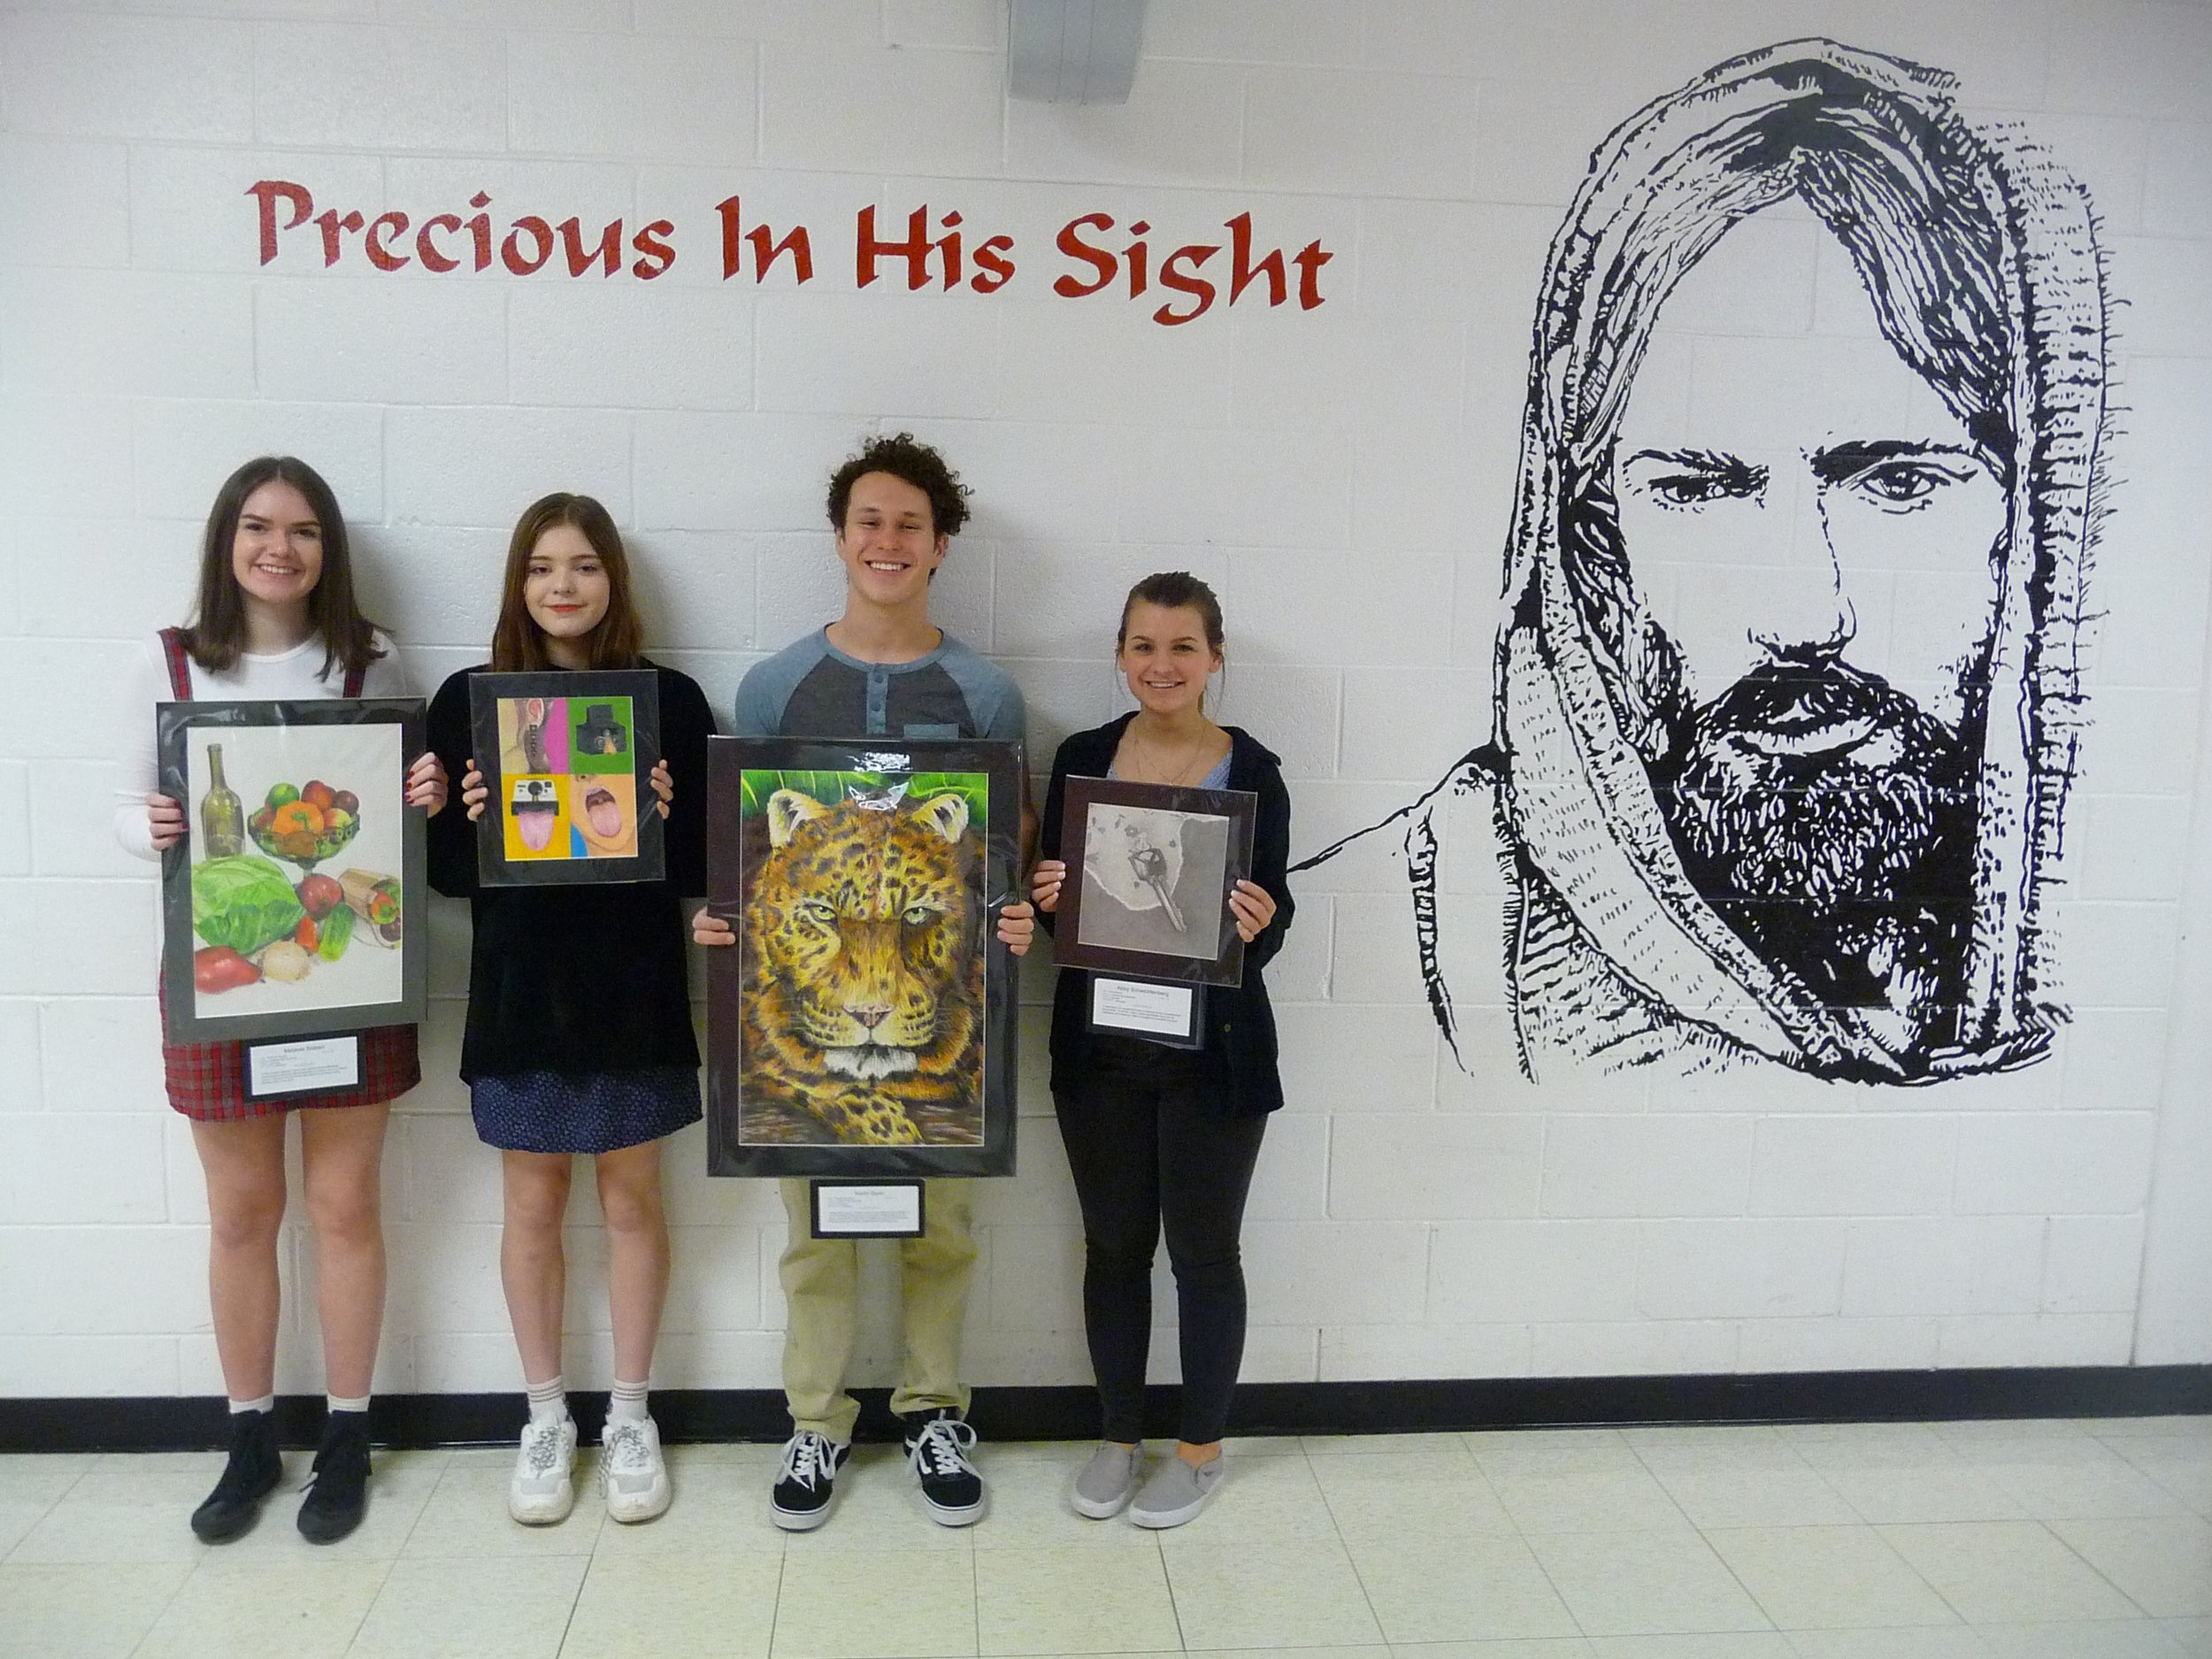 Melanie Siebert, Maddie Kasat, Aaron Gunn & Abby Schwichtenberg with their award-winning artwork